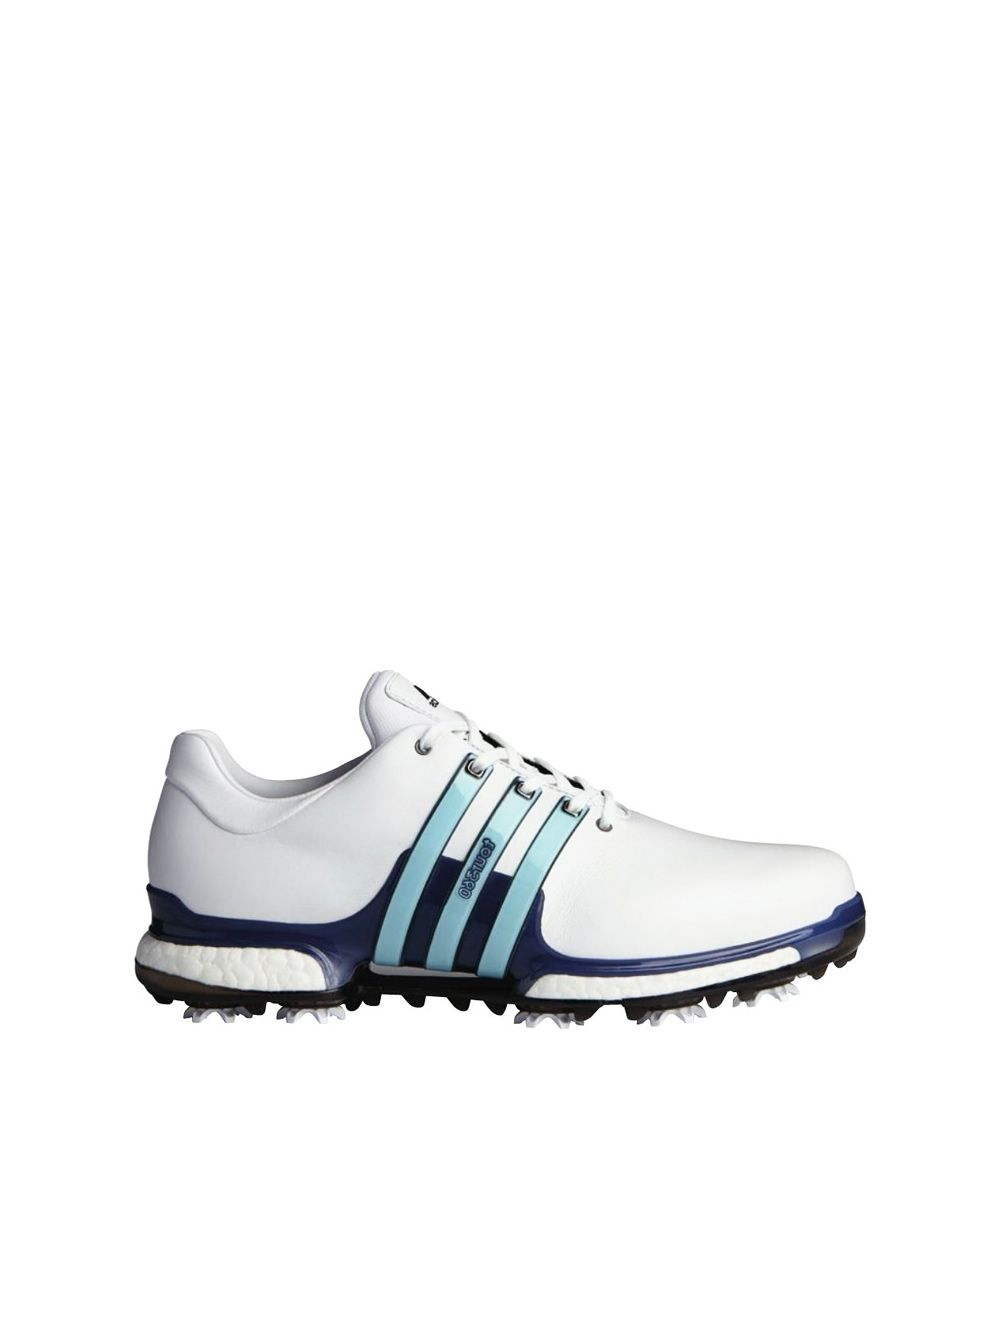 La Iglesia Vegetación Crónico  adidas Tour360 Boost 2.0 Golf Shoes - White/Mystery Ink/Icy Blue